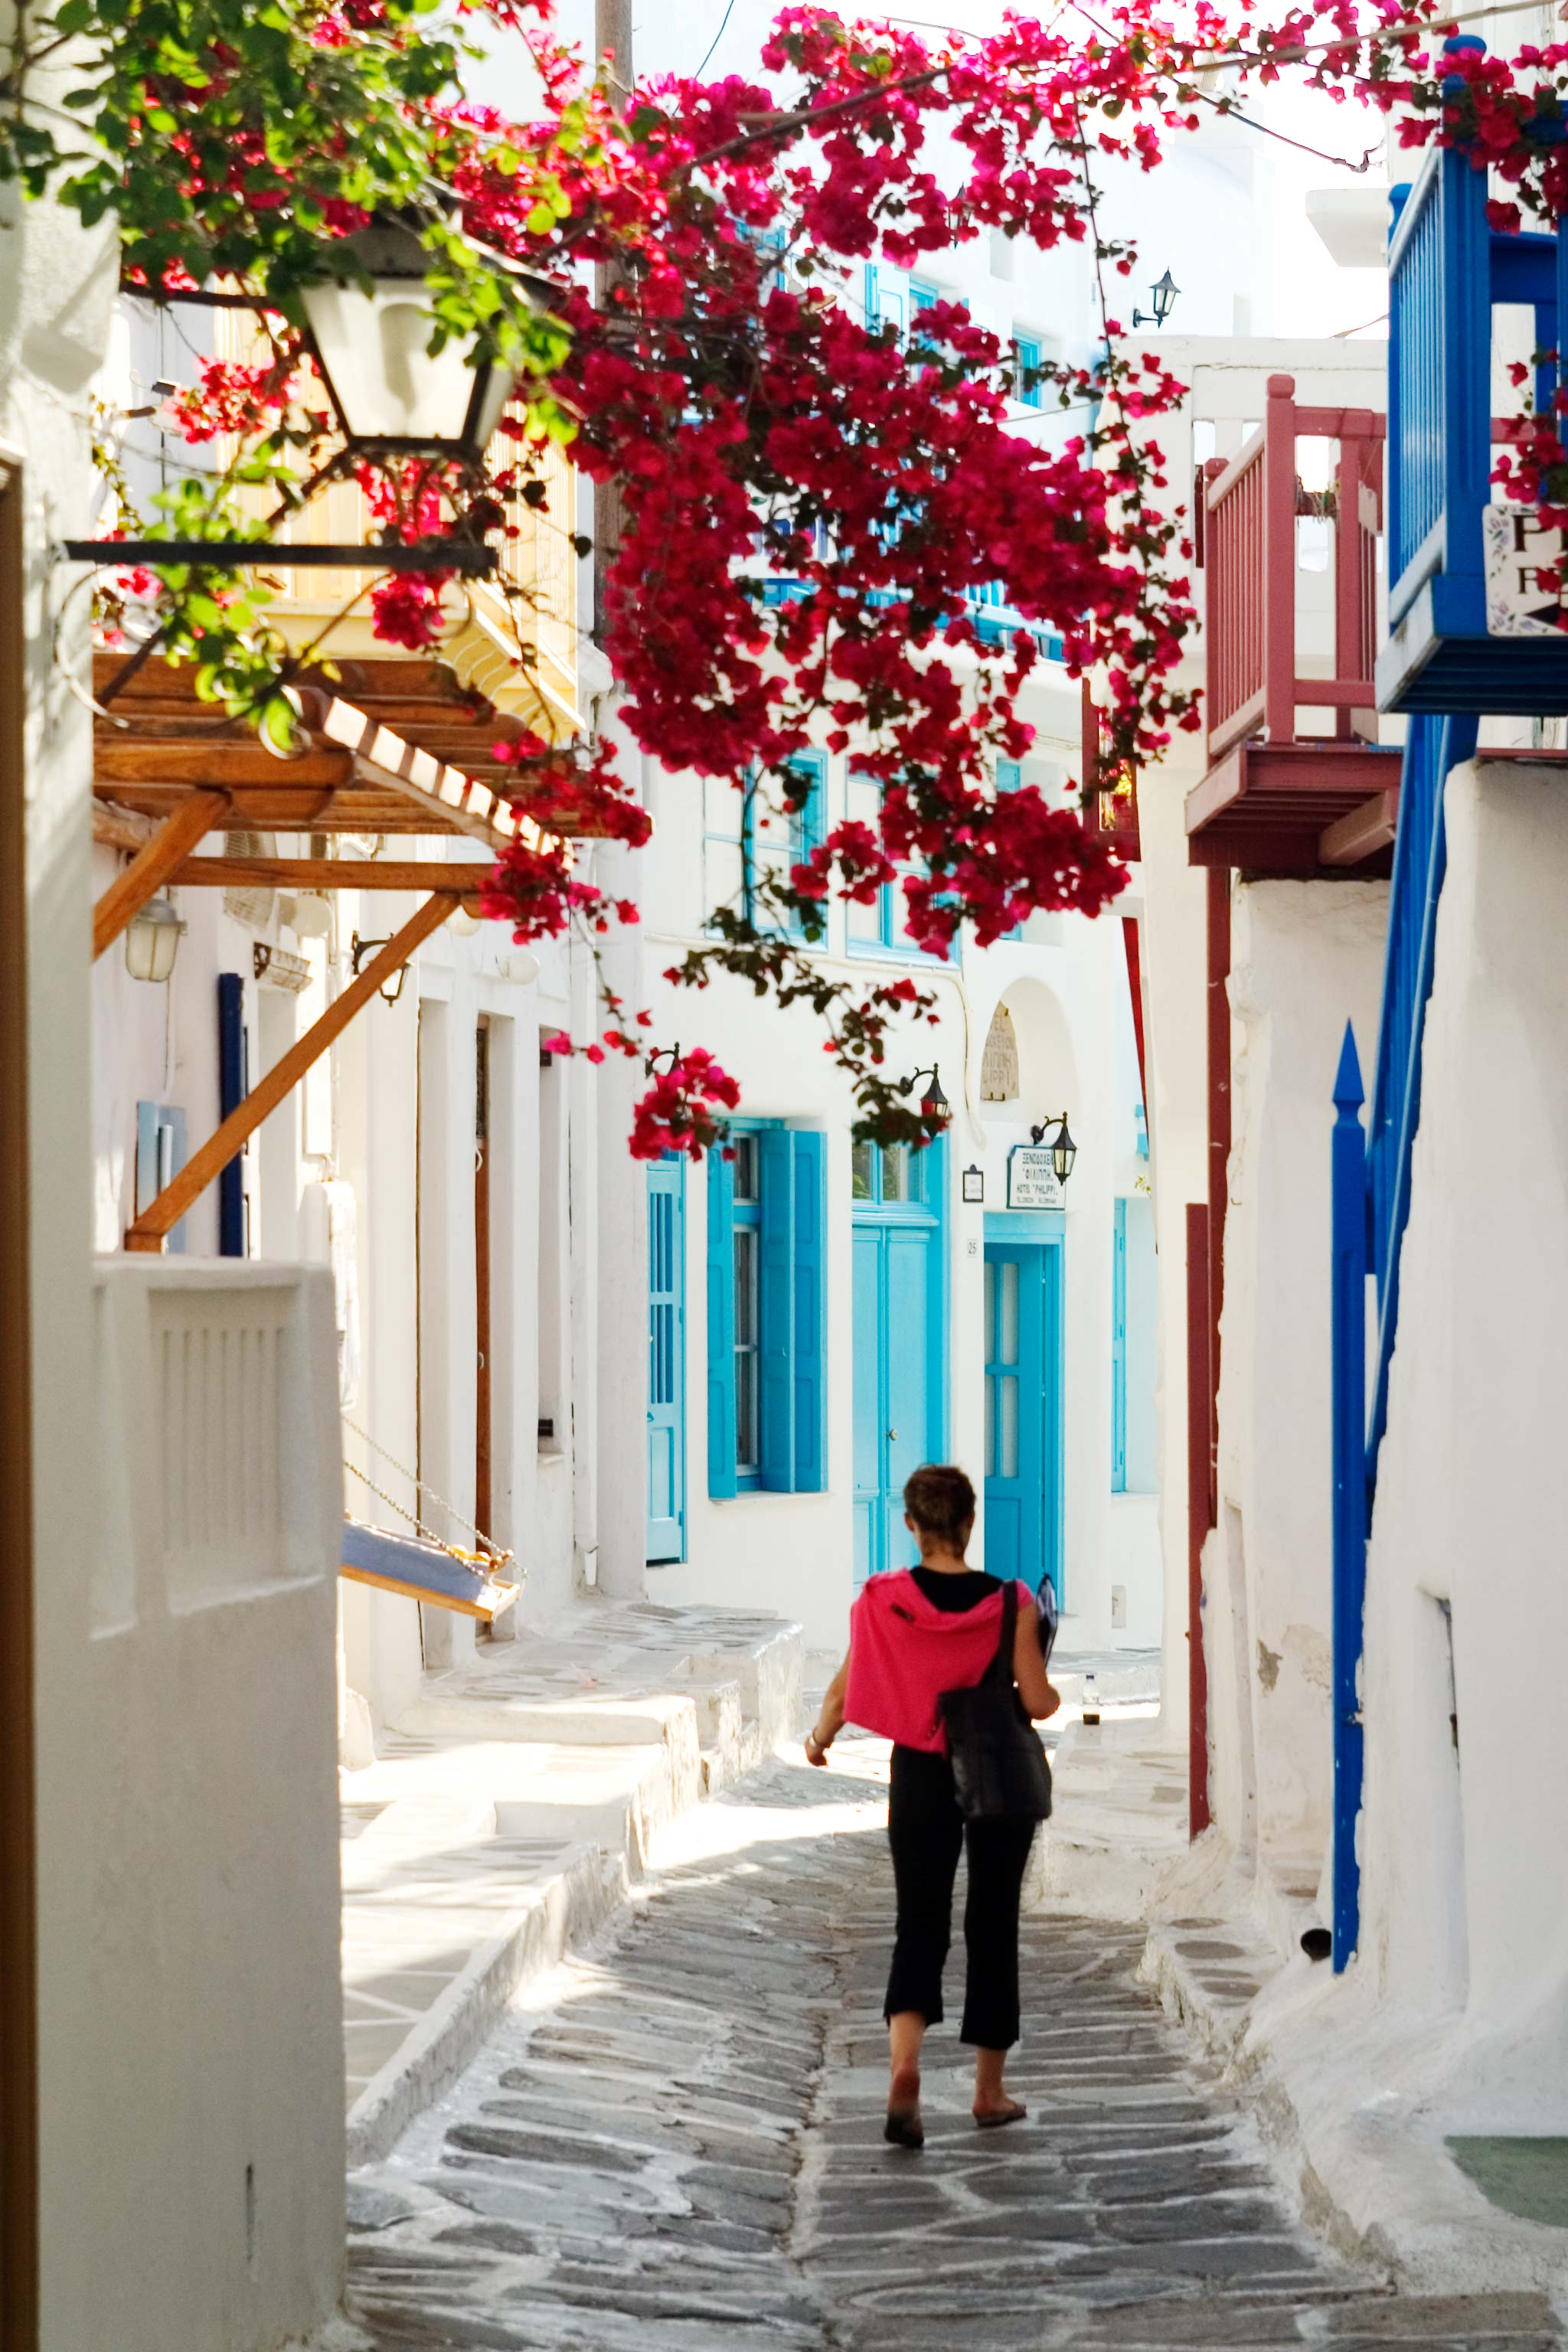 greece_girl_walking_down_street_santorini_CRW_4530_websize.jpg